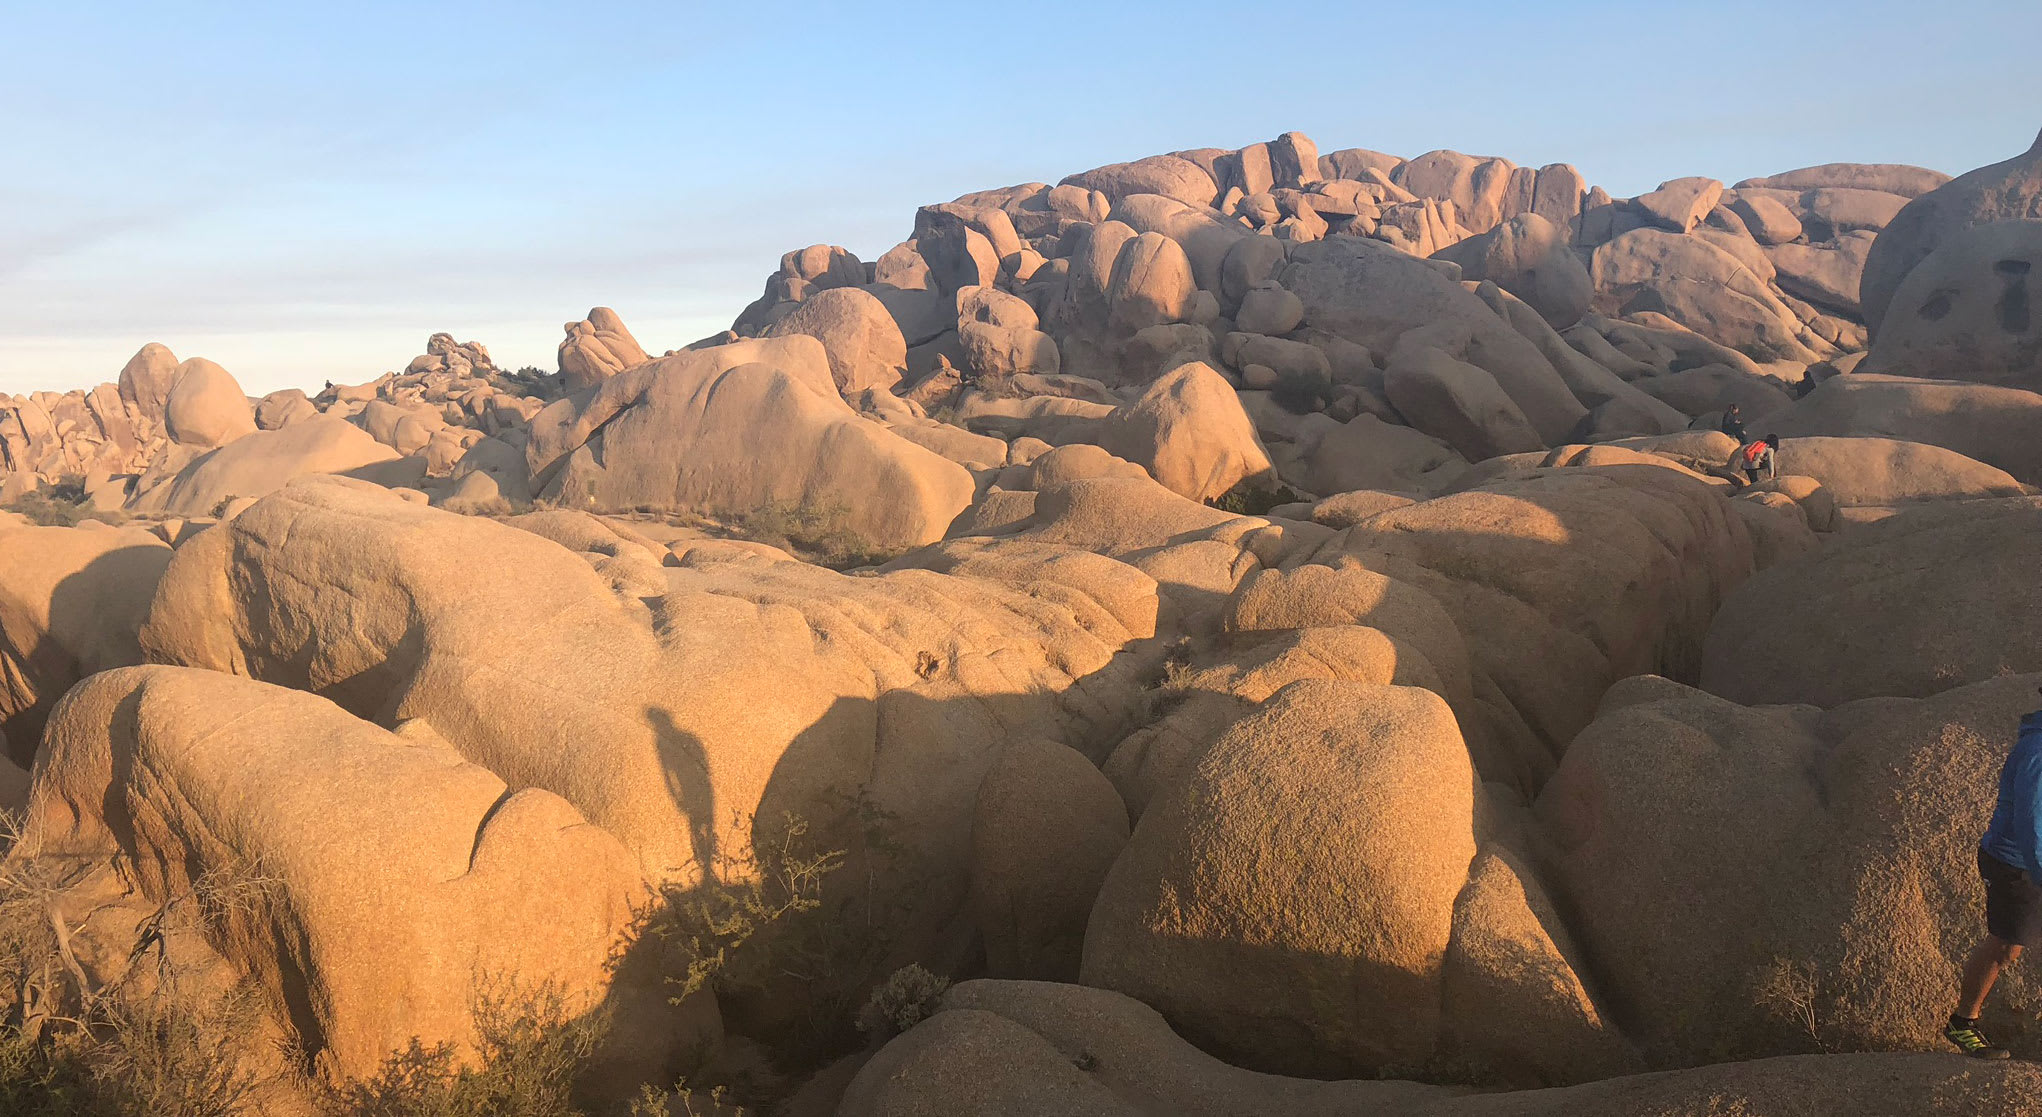 Joshua Tree National Park - famous for trees and boulders